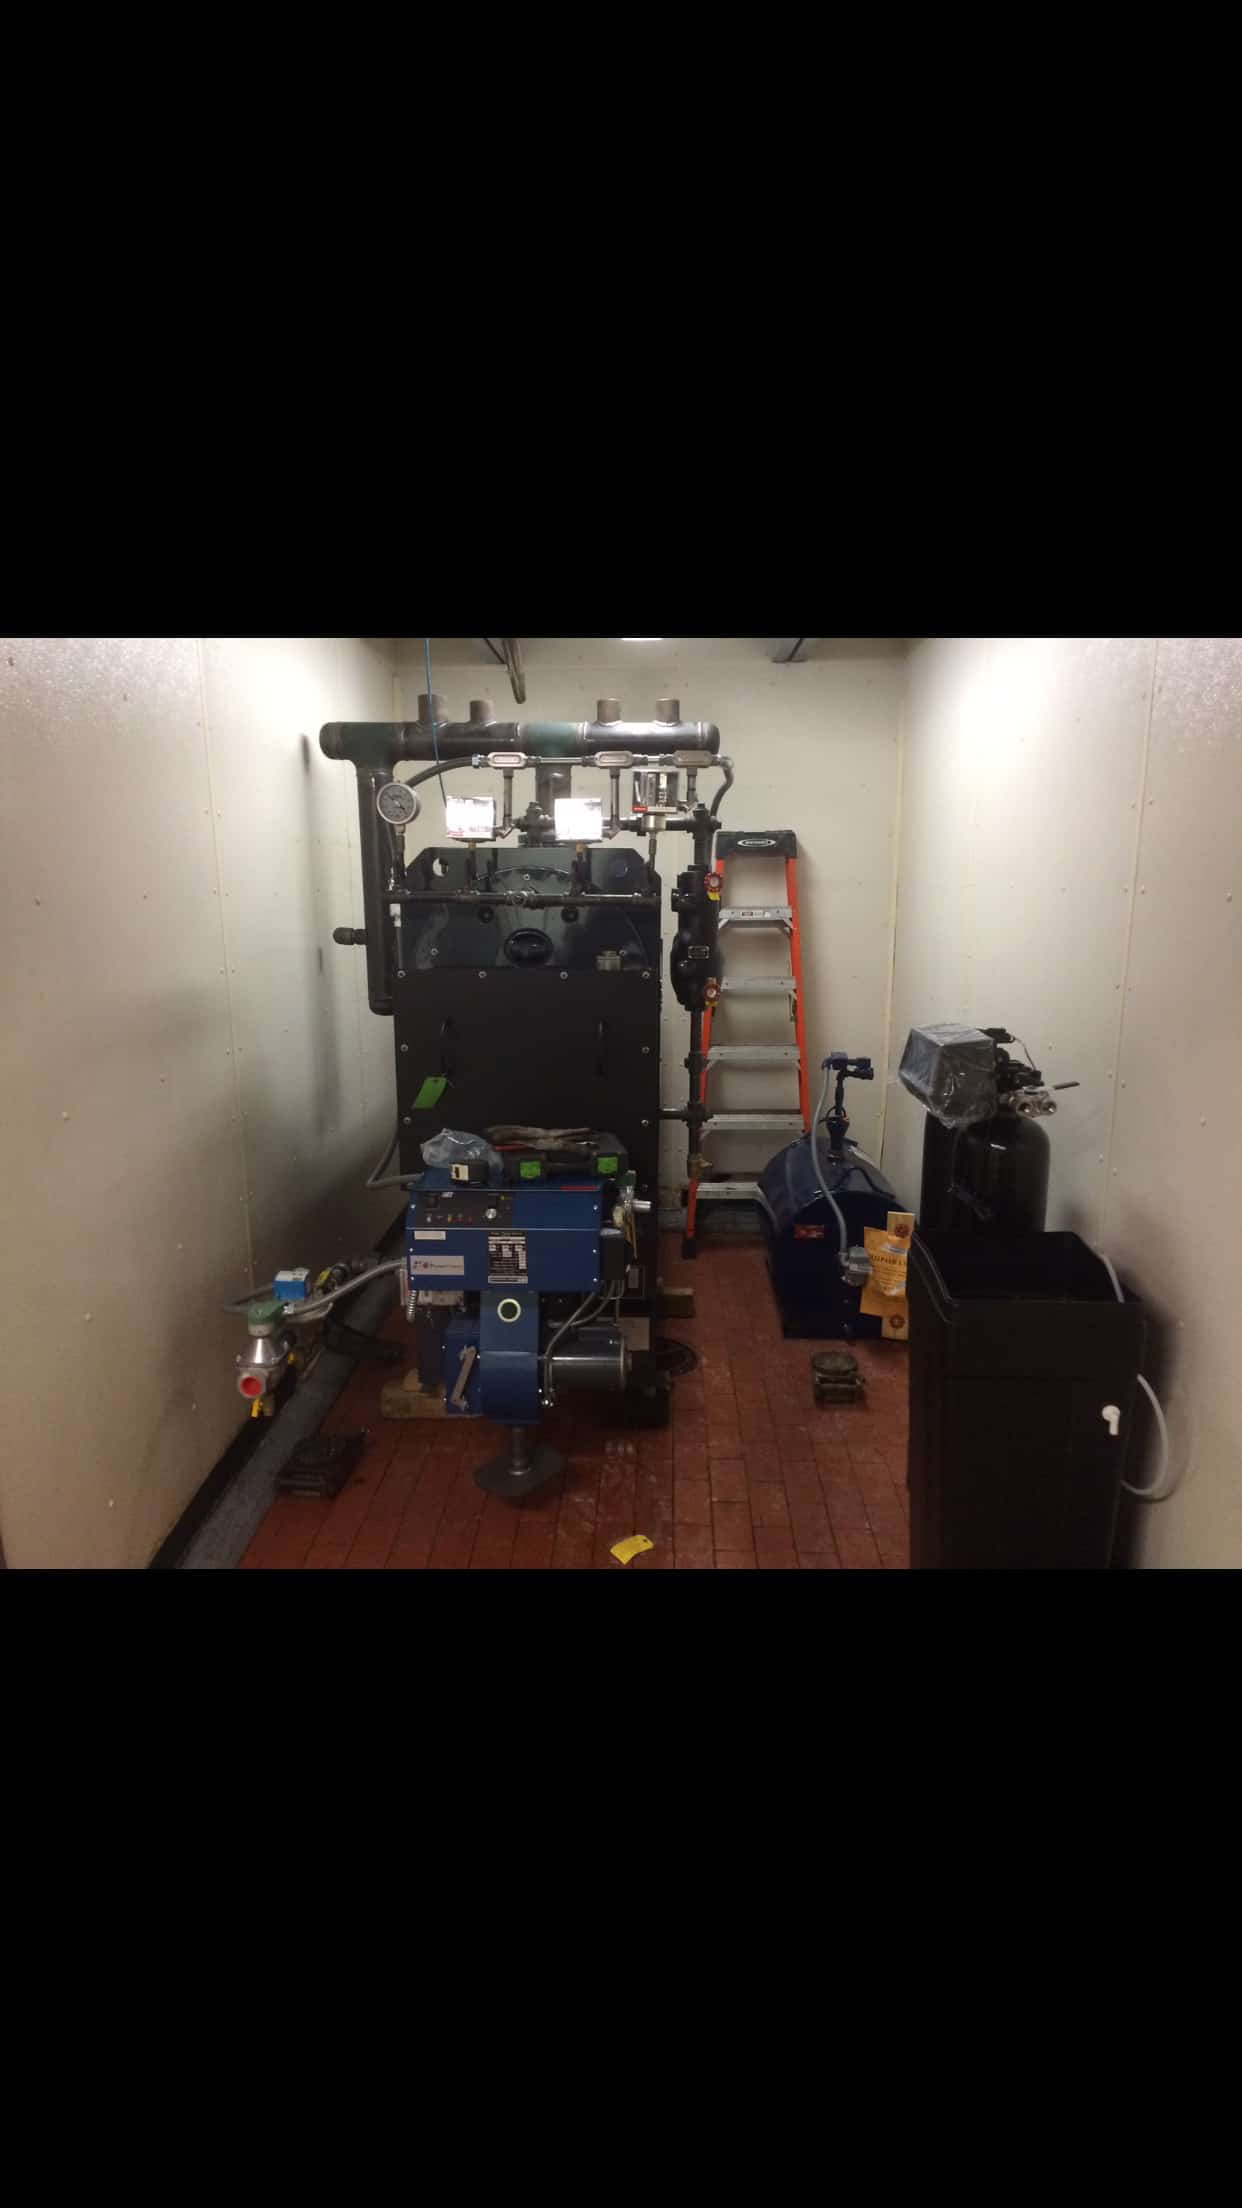 New Boiler System For Steam Injected Cooking